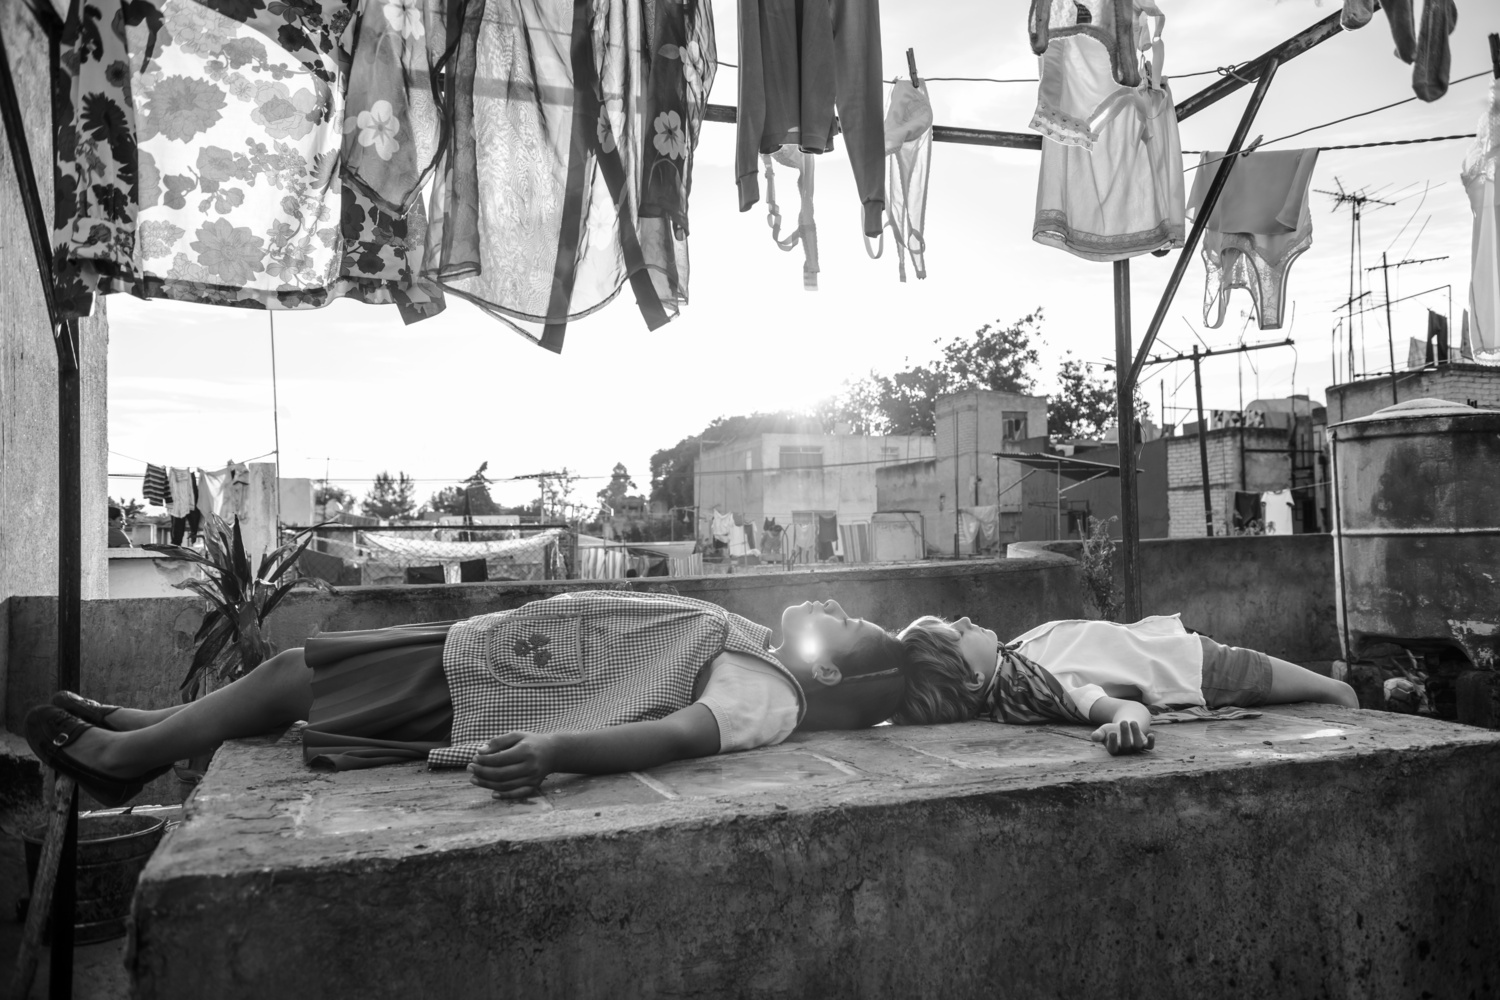 Roma. 2018. Mexico. Directed by Alfonso Cuarón. Courtesy of Netflix